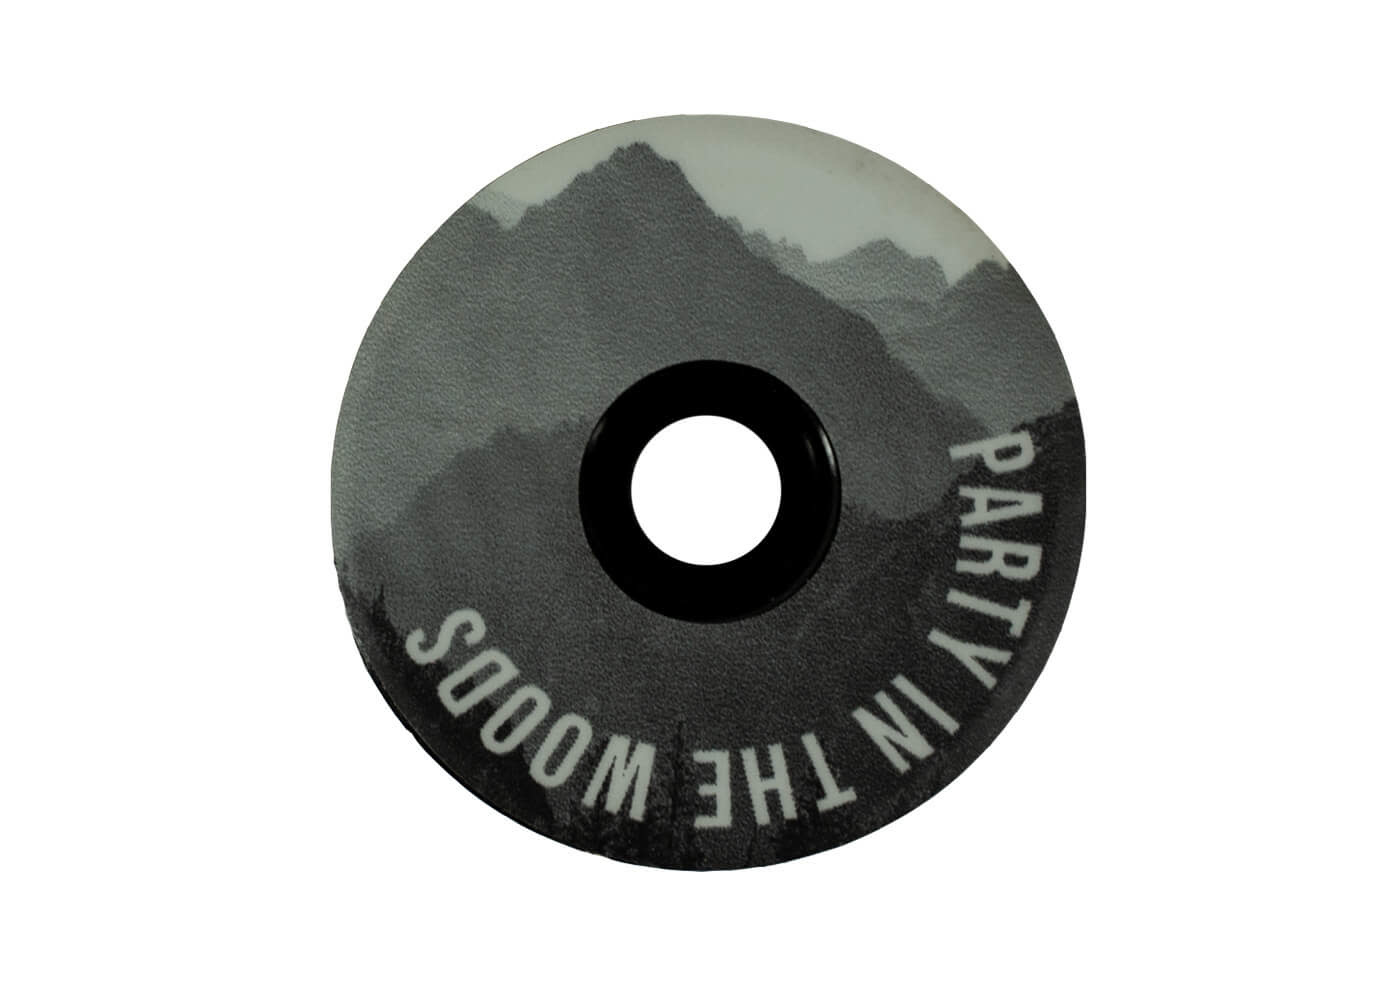 Transition Ground Keeper Top Cap: (Black and White Peaks)